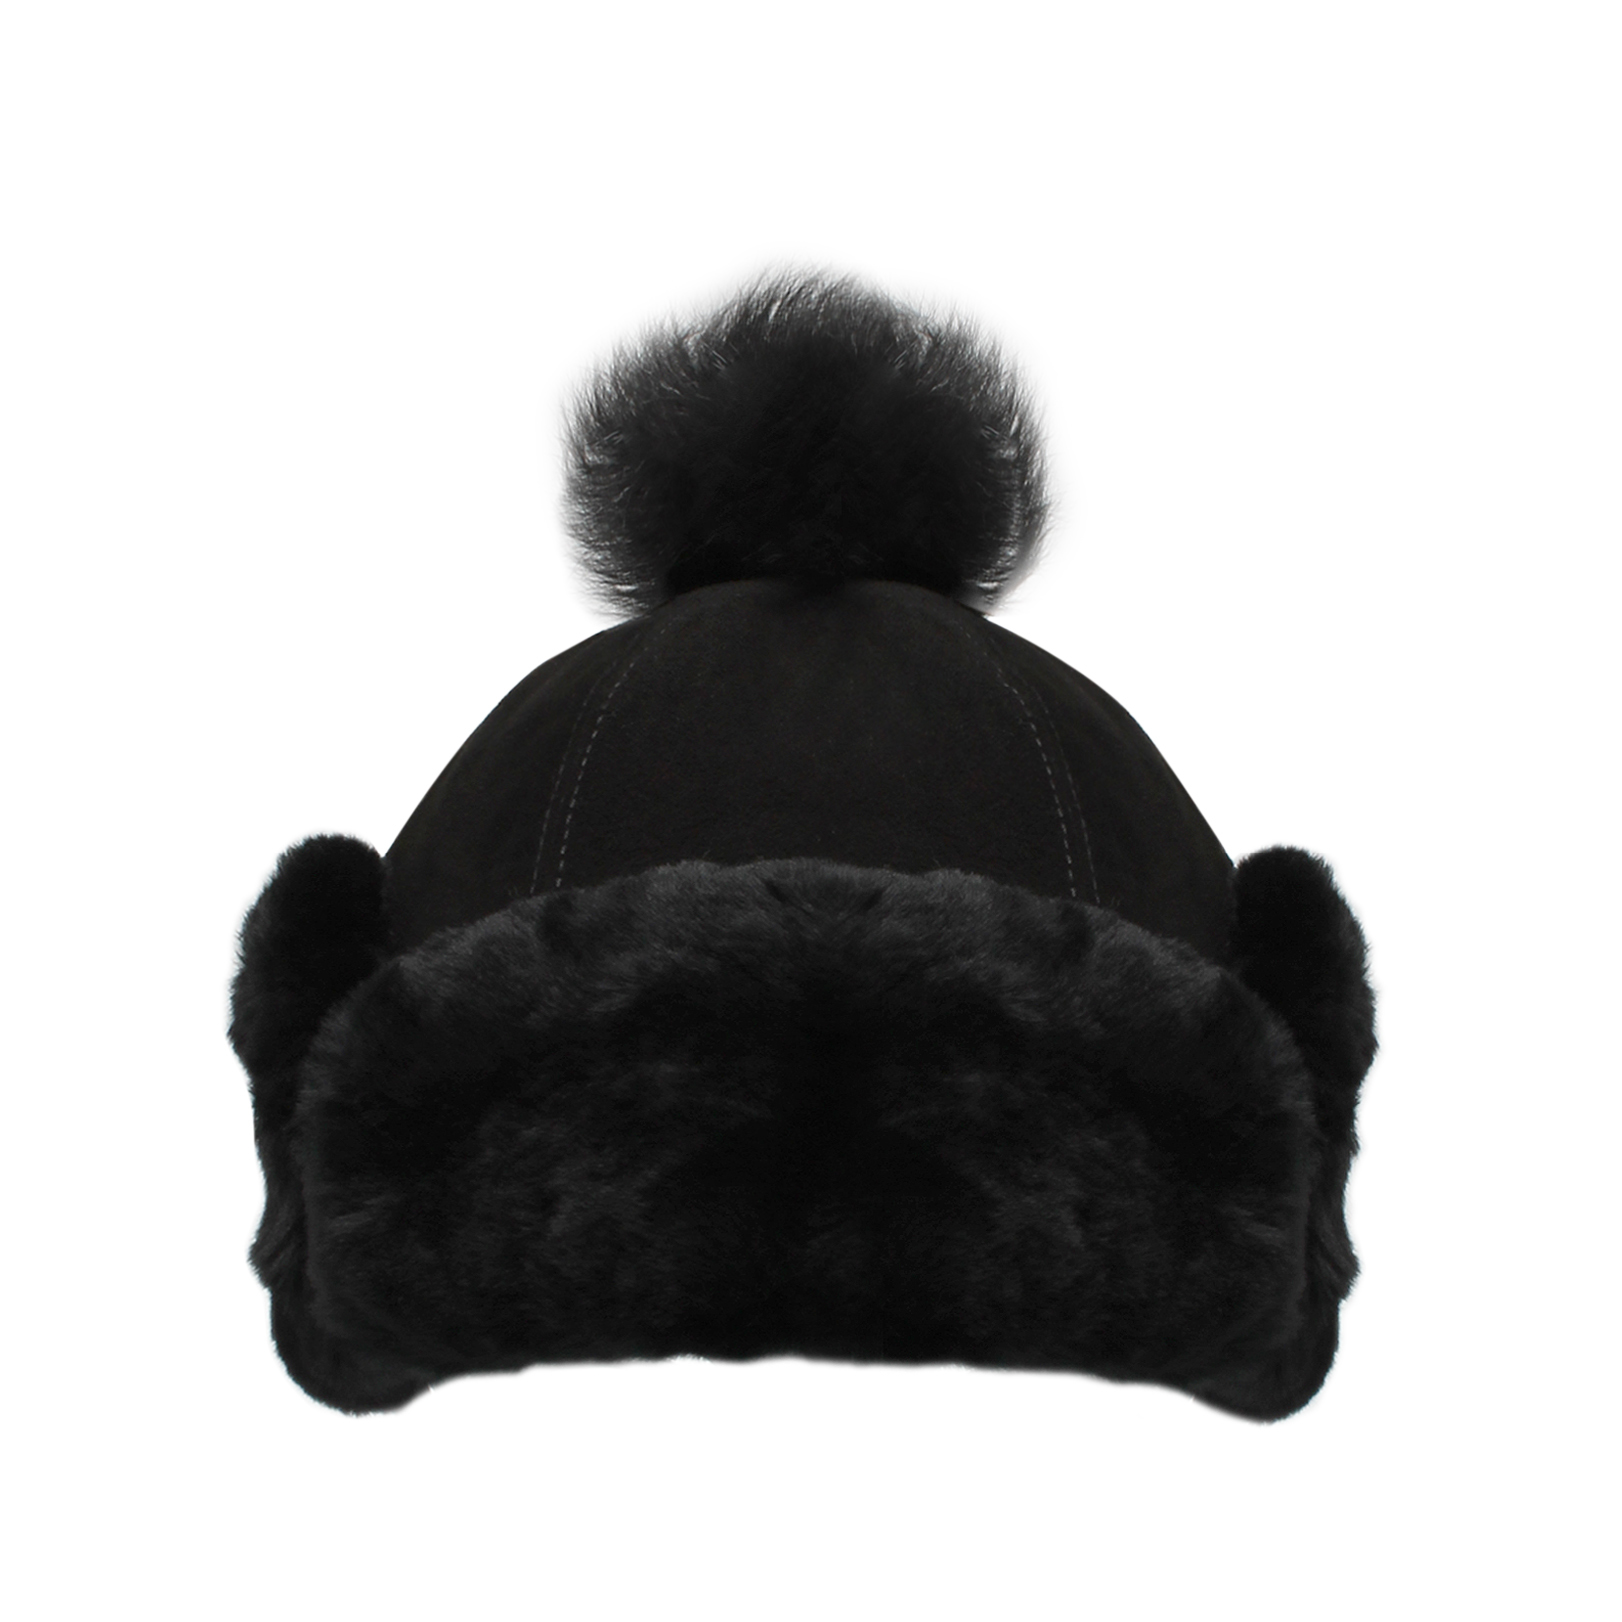 SHEEPSKIN HERITAGE FLAP